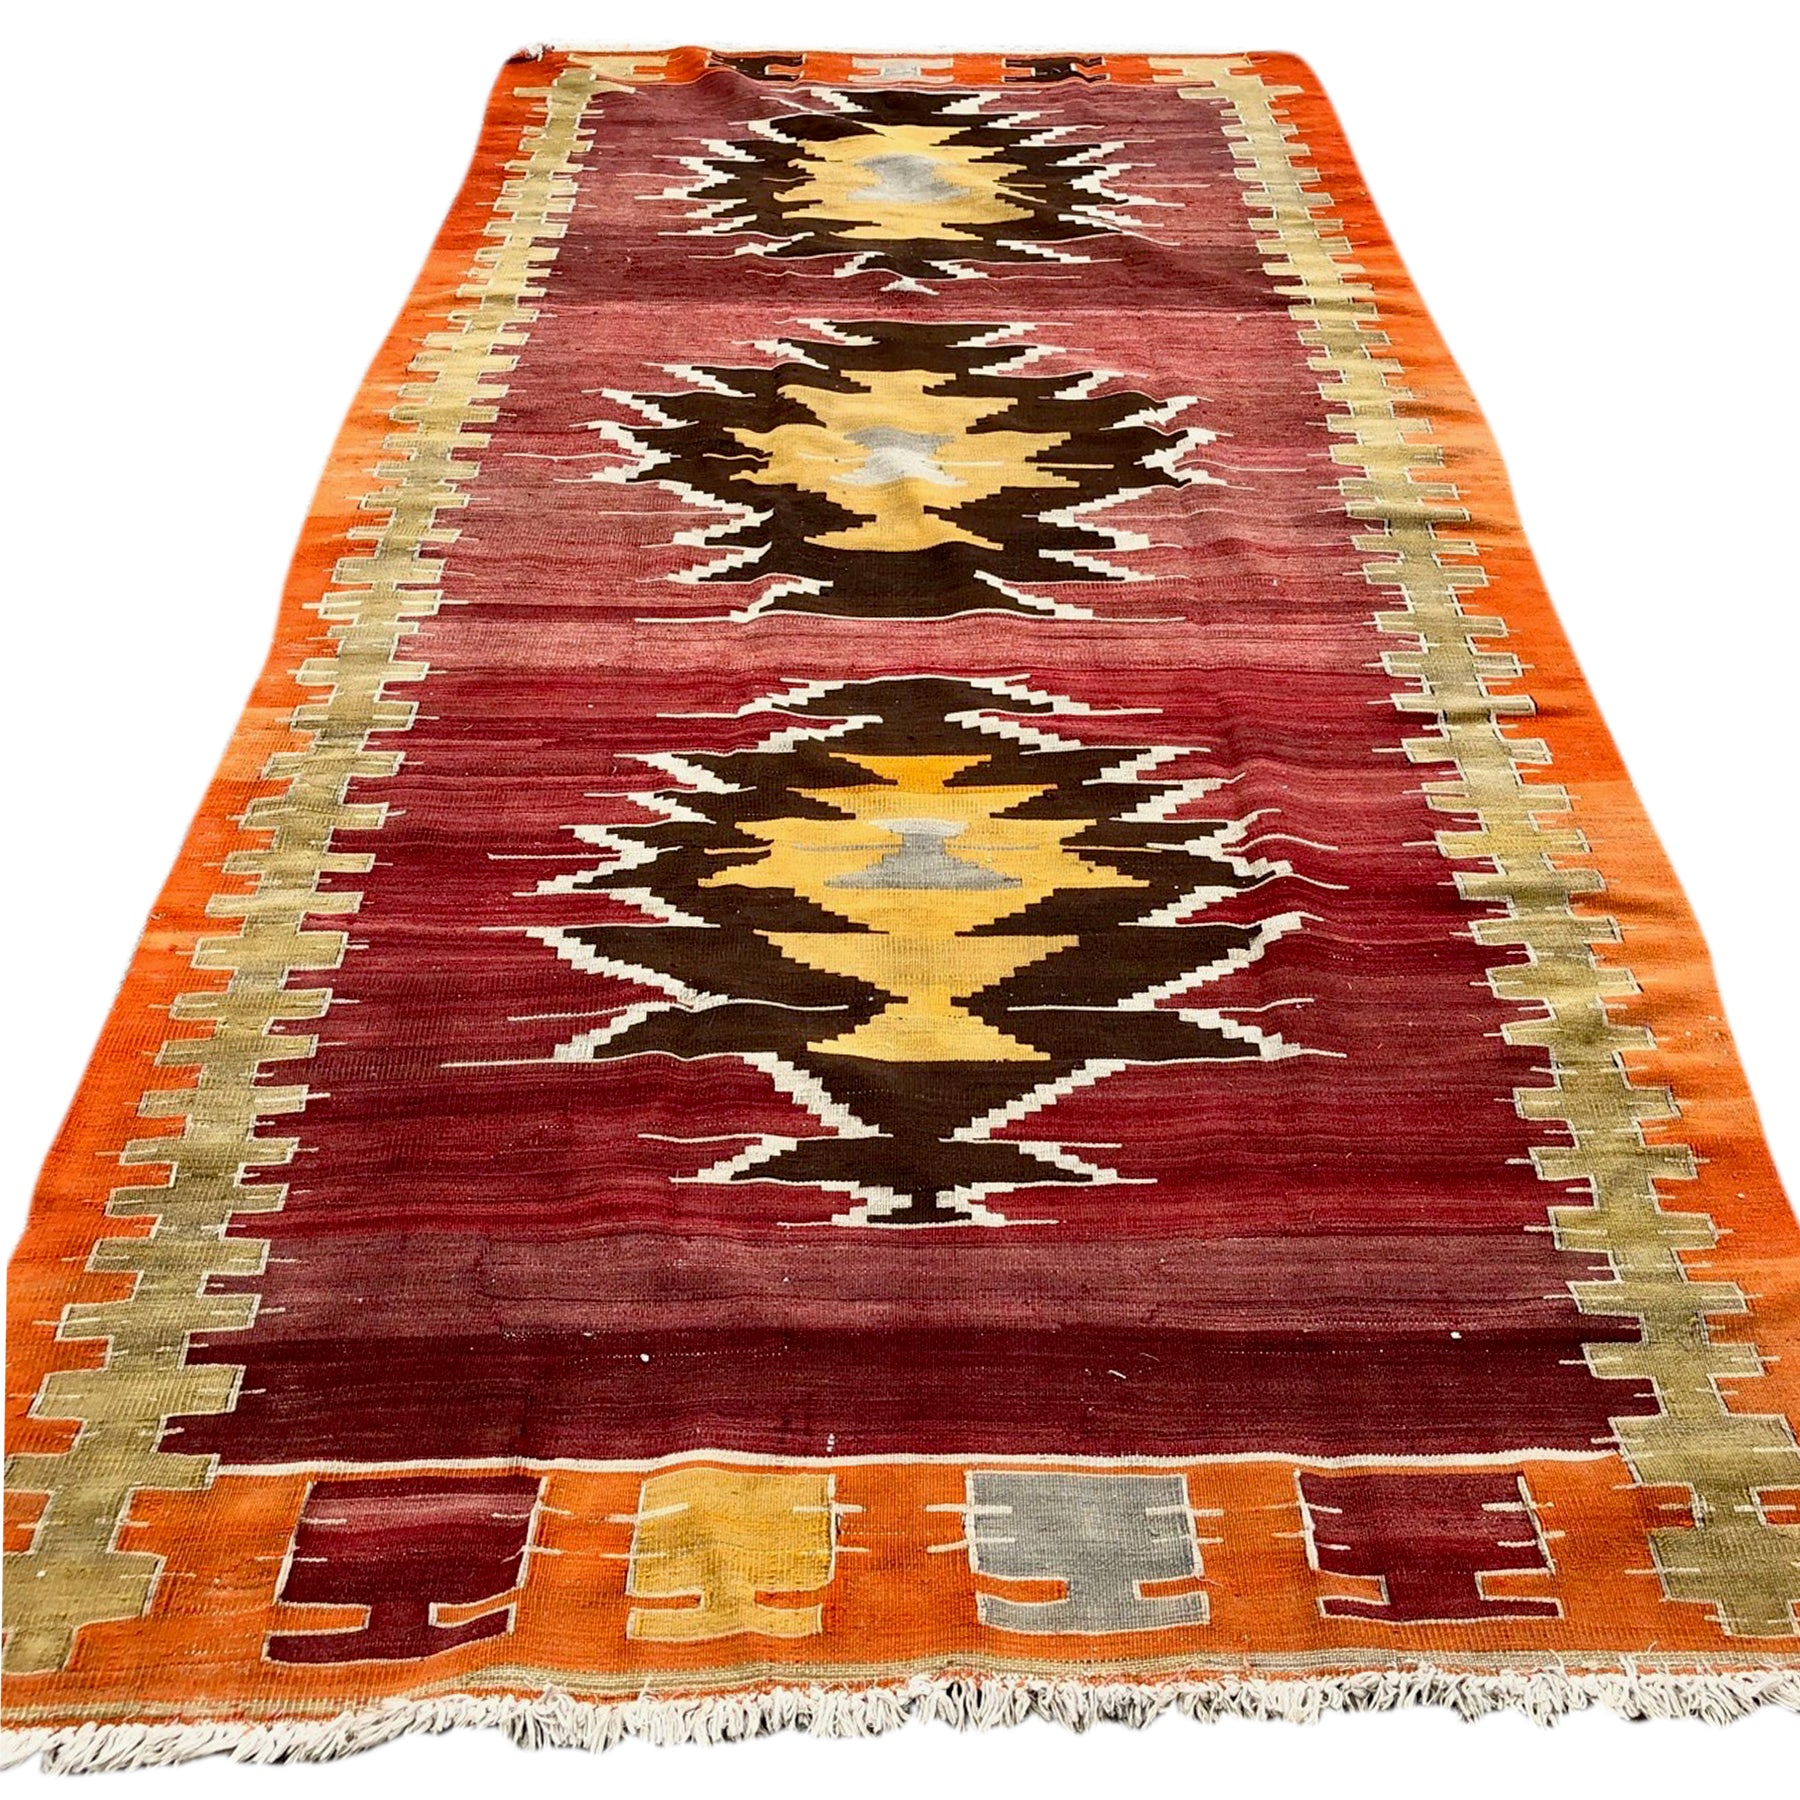 R35: Vintage Handmade Kilim in Bright Colors 5'1